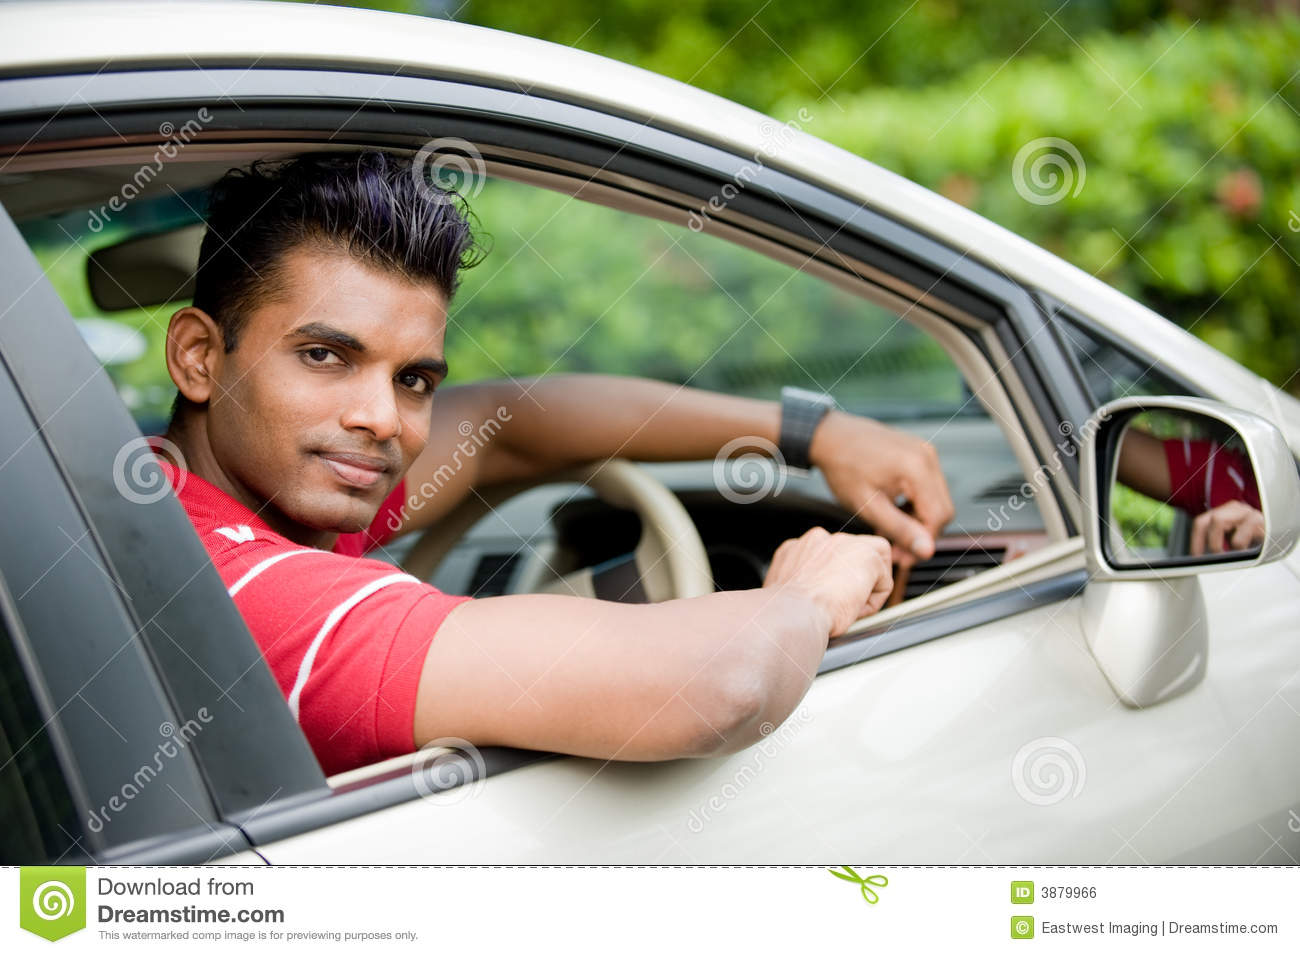 Guy In Car Royalty Free Stock Image Image 3879966